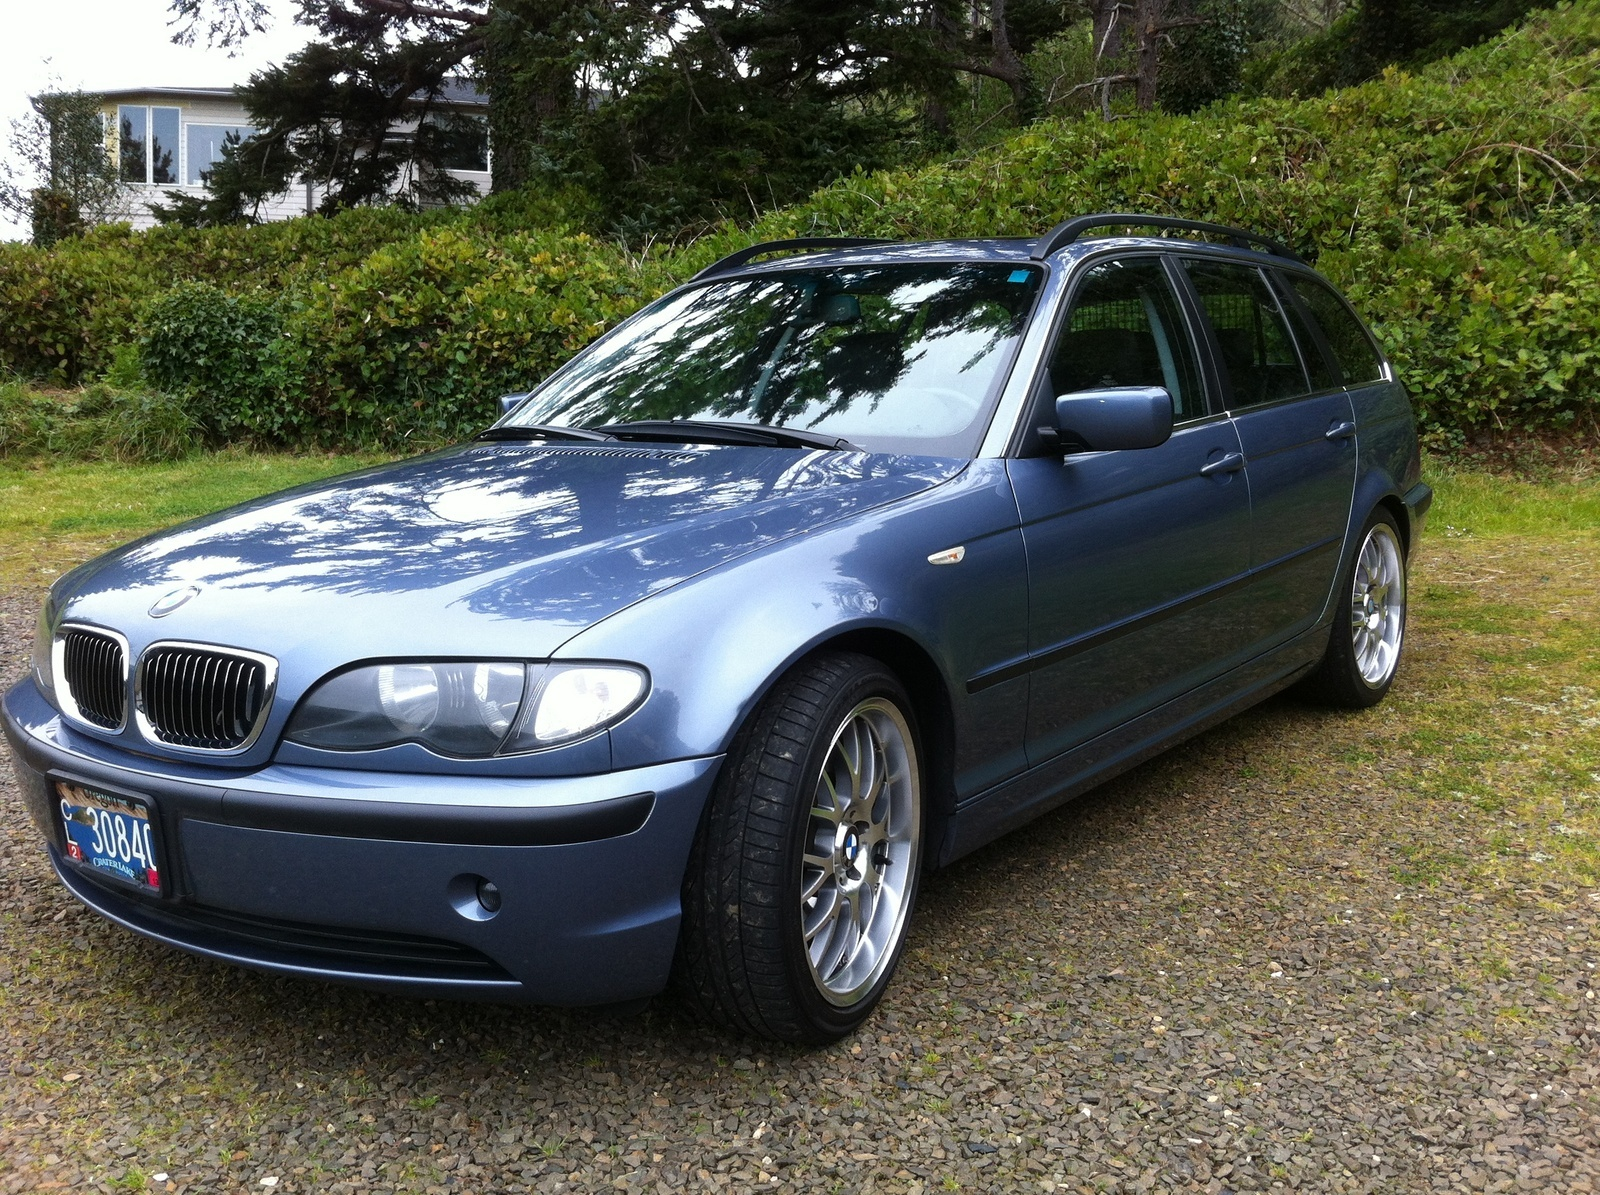 BMW 3 Series Questions - I just bought 330, it has 89,000 miles and i have  no maintenance recor... - CarGurus